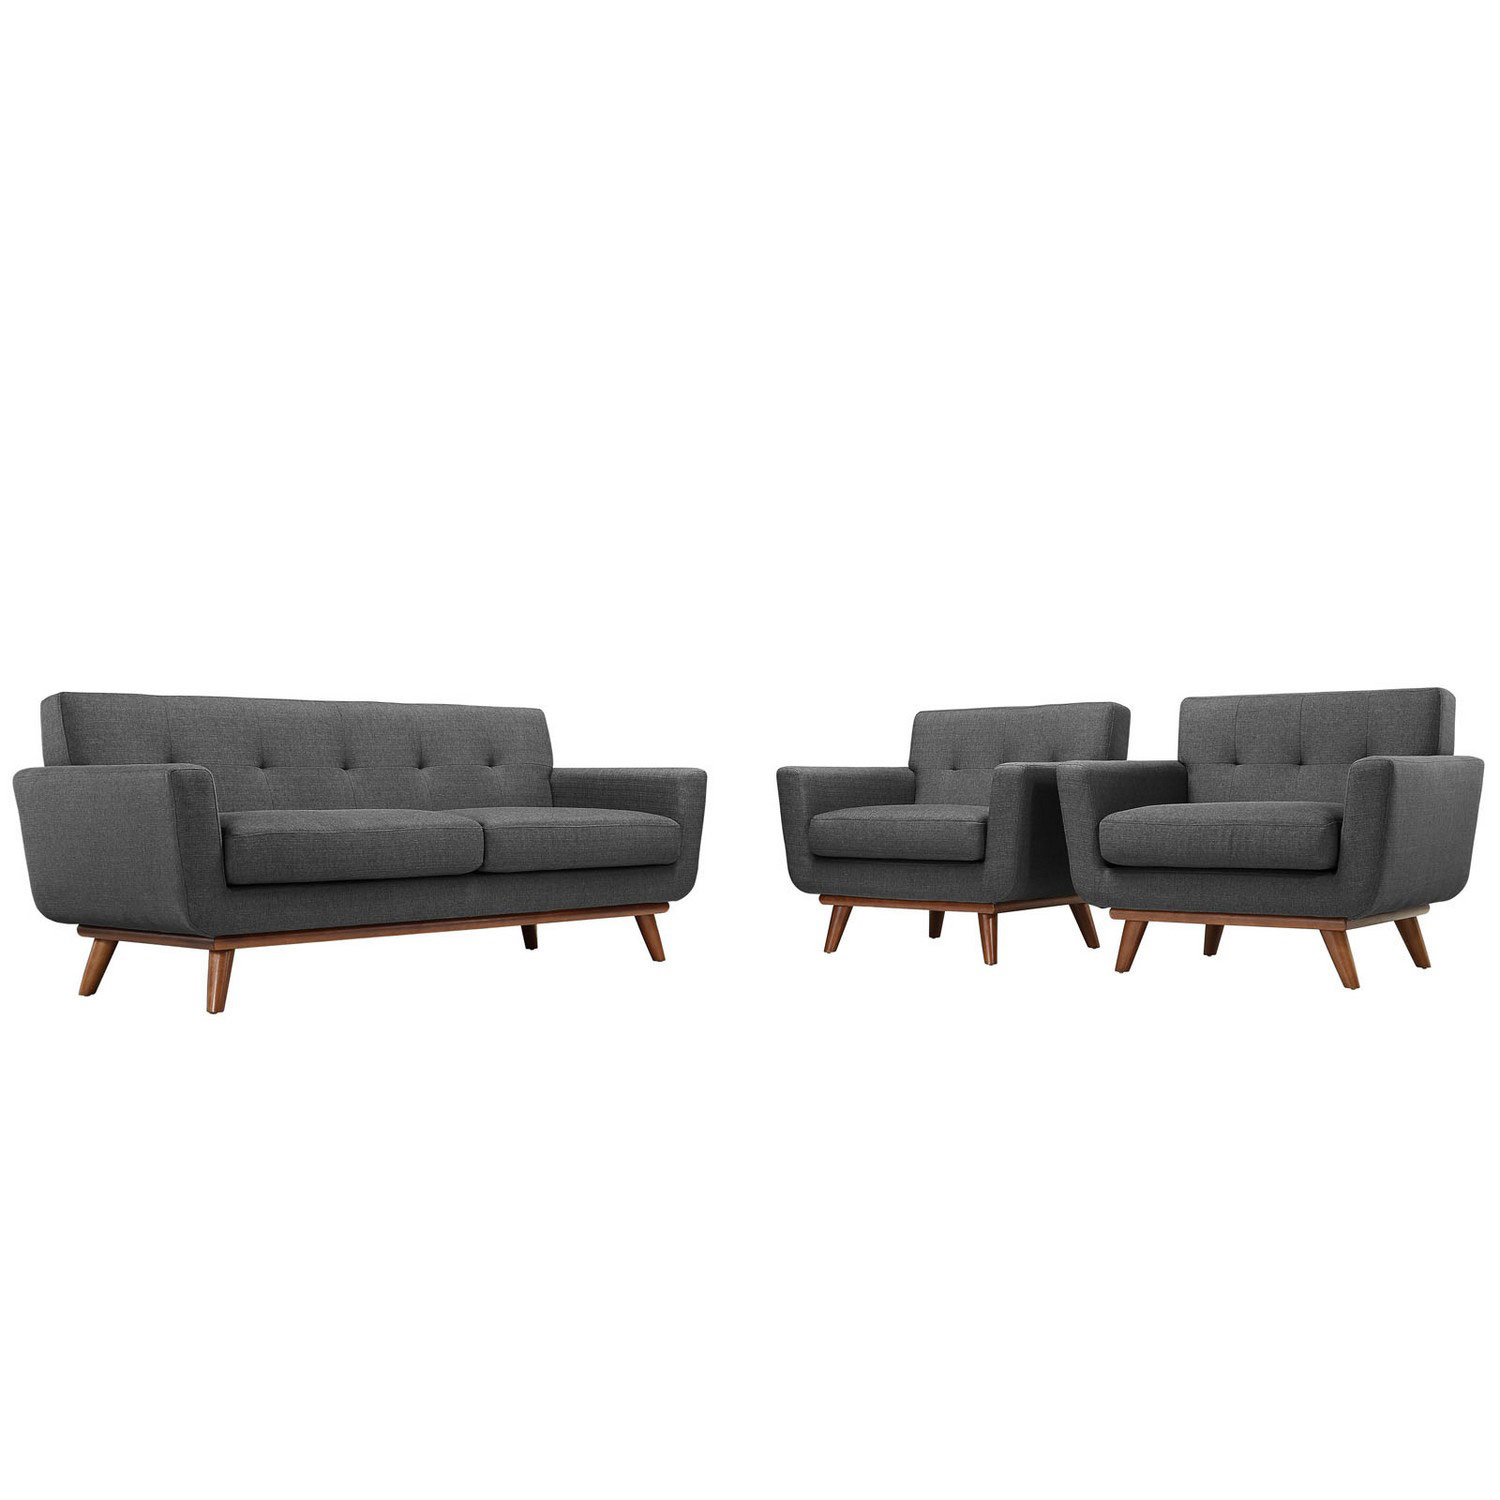 Modway Engage Armchairs and Loveseat Set of 3 - Gray